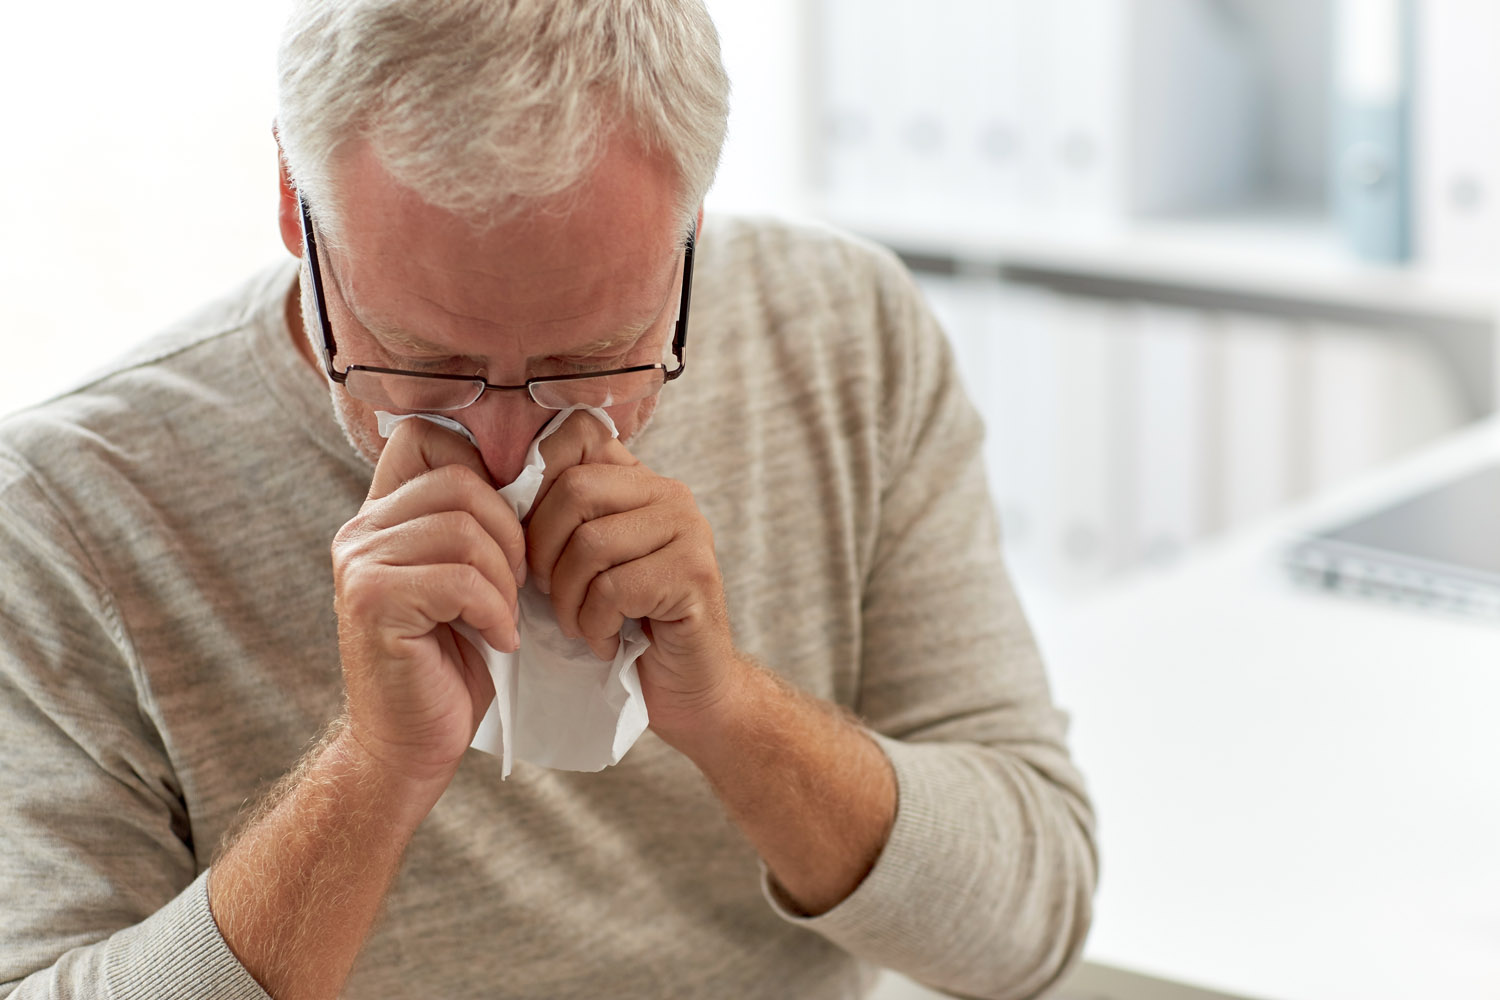 medicine, healthcare, flu and people concept - senior man blowing nose with napkin at medical office at hospital